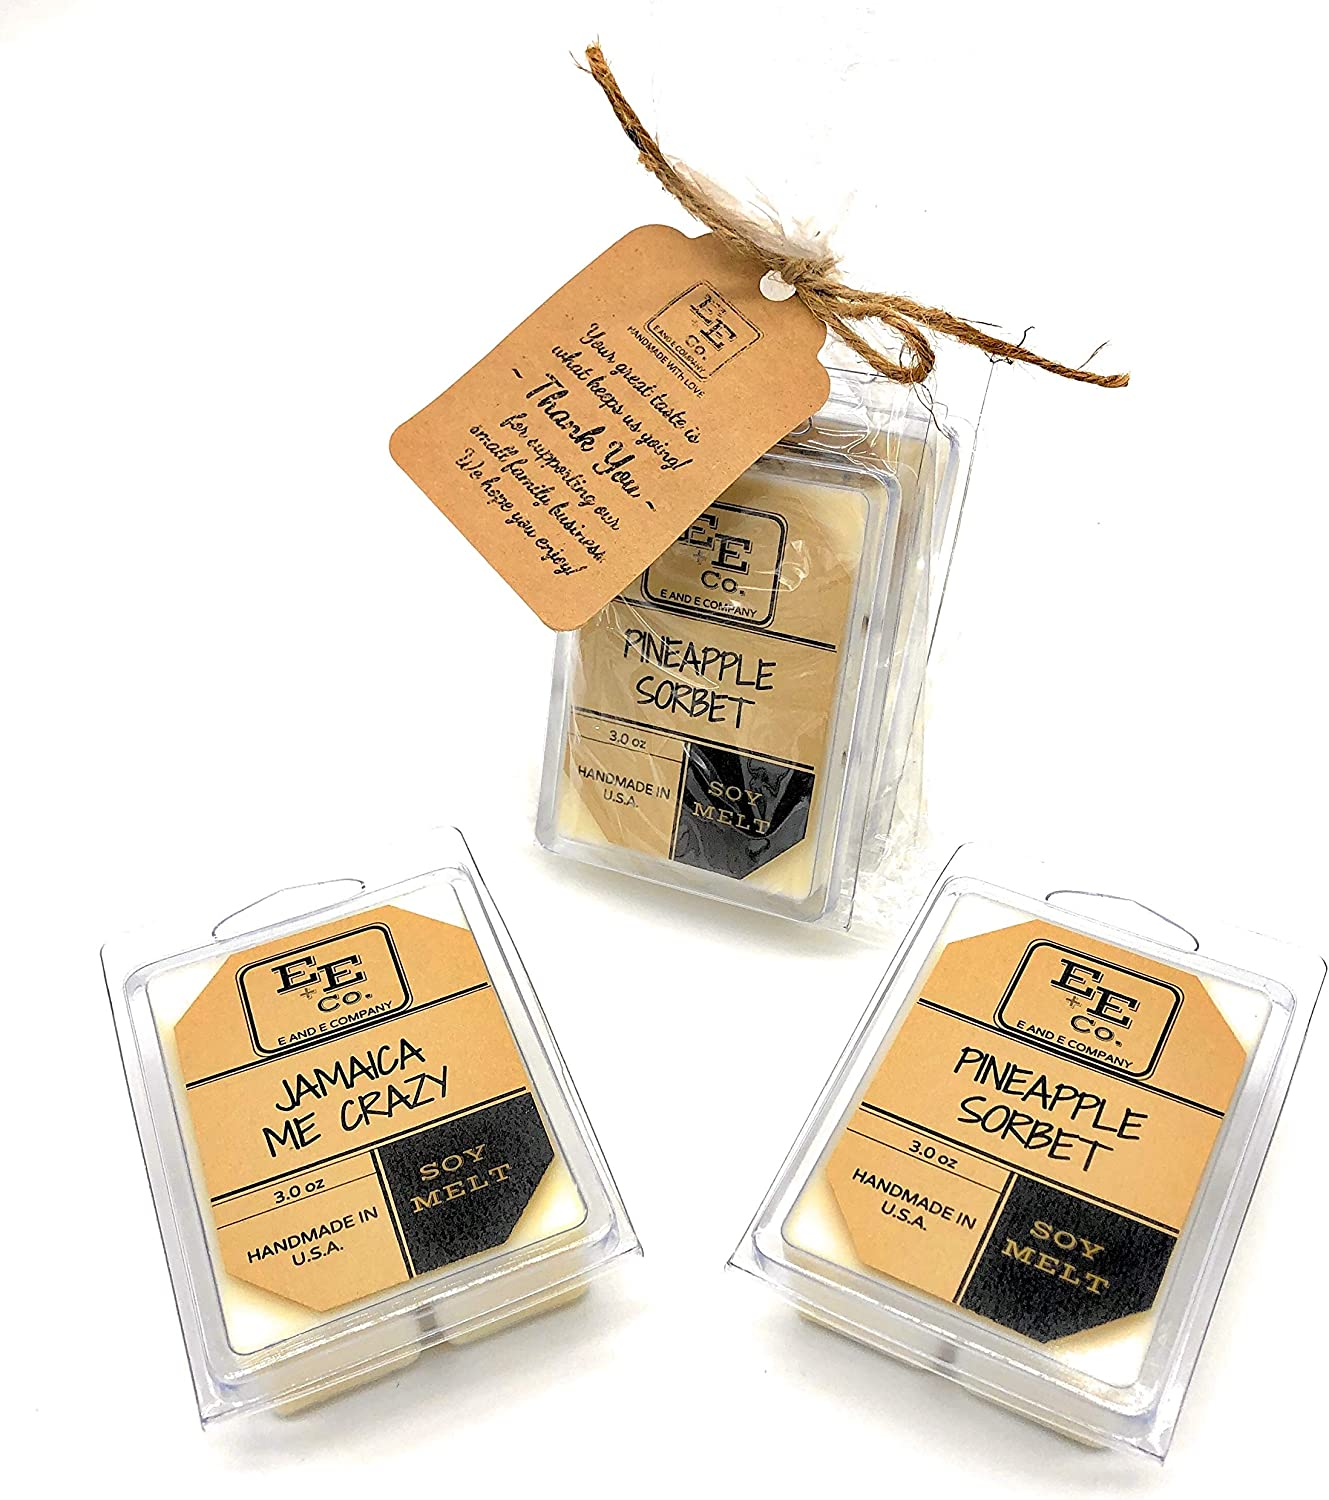 Balsam /& Cedar Scented Wax Warmer Cubes 100/% Naturals Essential Oils for Better Homes and Gardens with Coconut Soy Wax Tarts Melts 3 Oz Eco Aroma Coco-Soy Candles Set of 6 Cubes